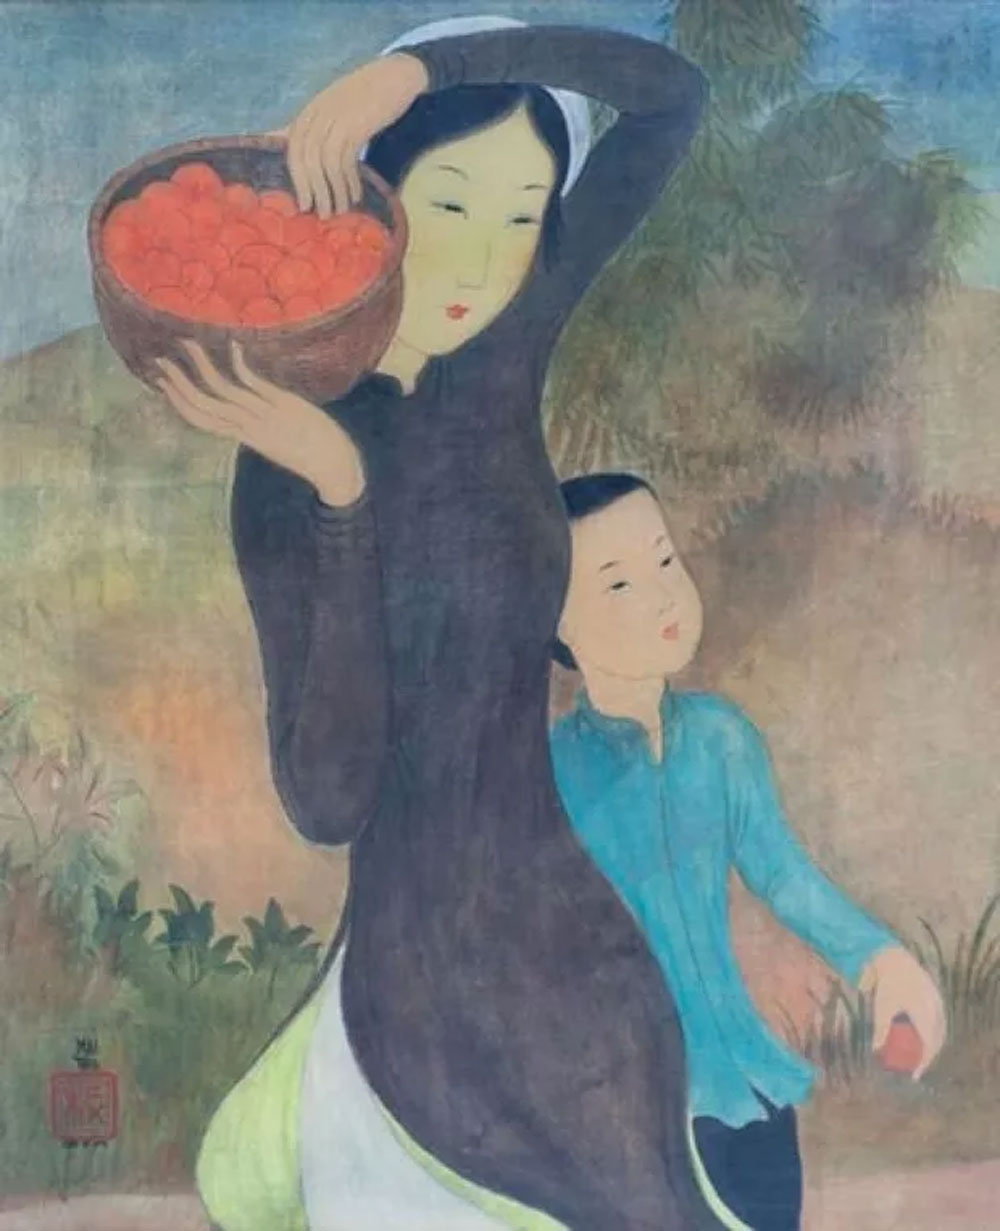 French exhibition, display artworks, painter Mai Trung Thu, 140 paintings, Ursulines Museum, Vietnamese contemporary art